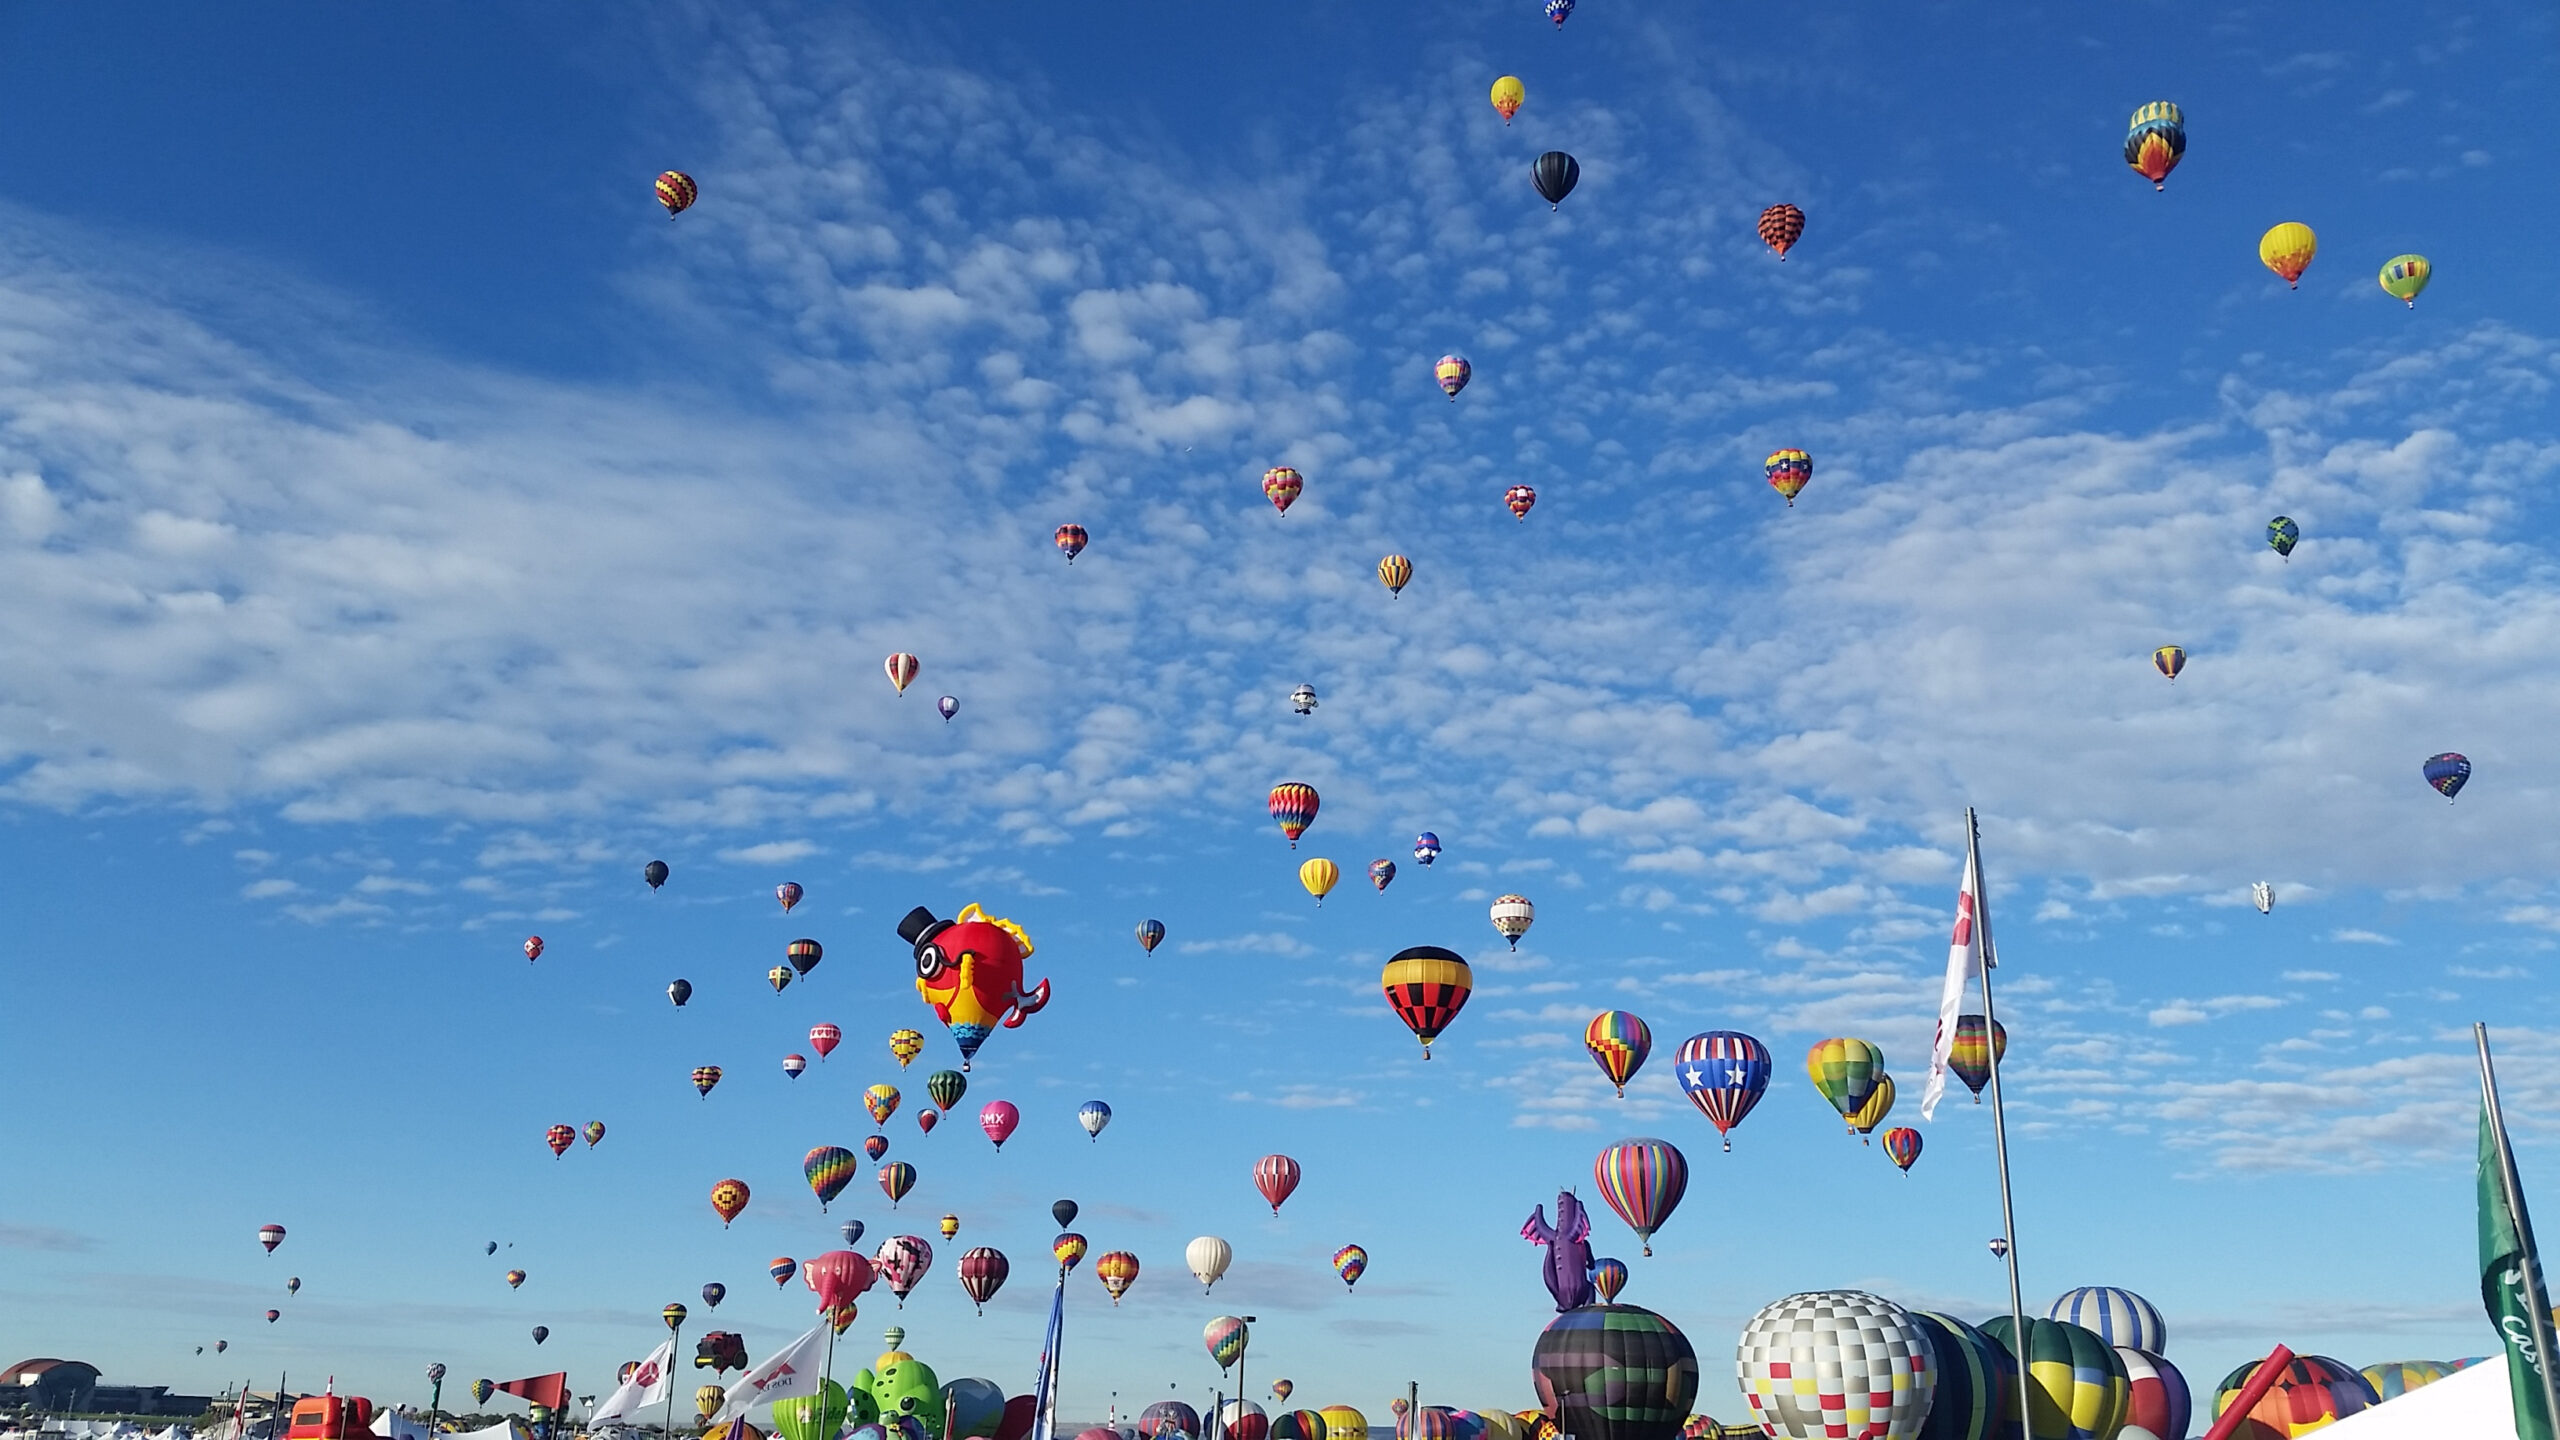 Hot air balloons floating against a blue sky. Photo from the Albuquerque International Balloon Fiesta